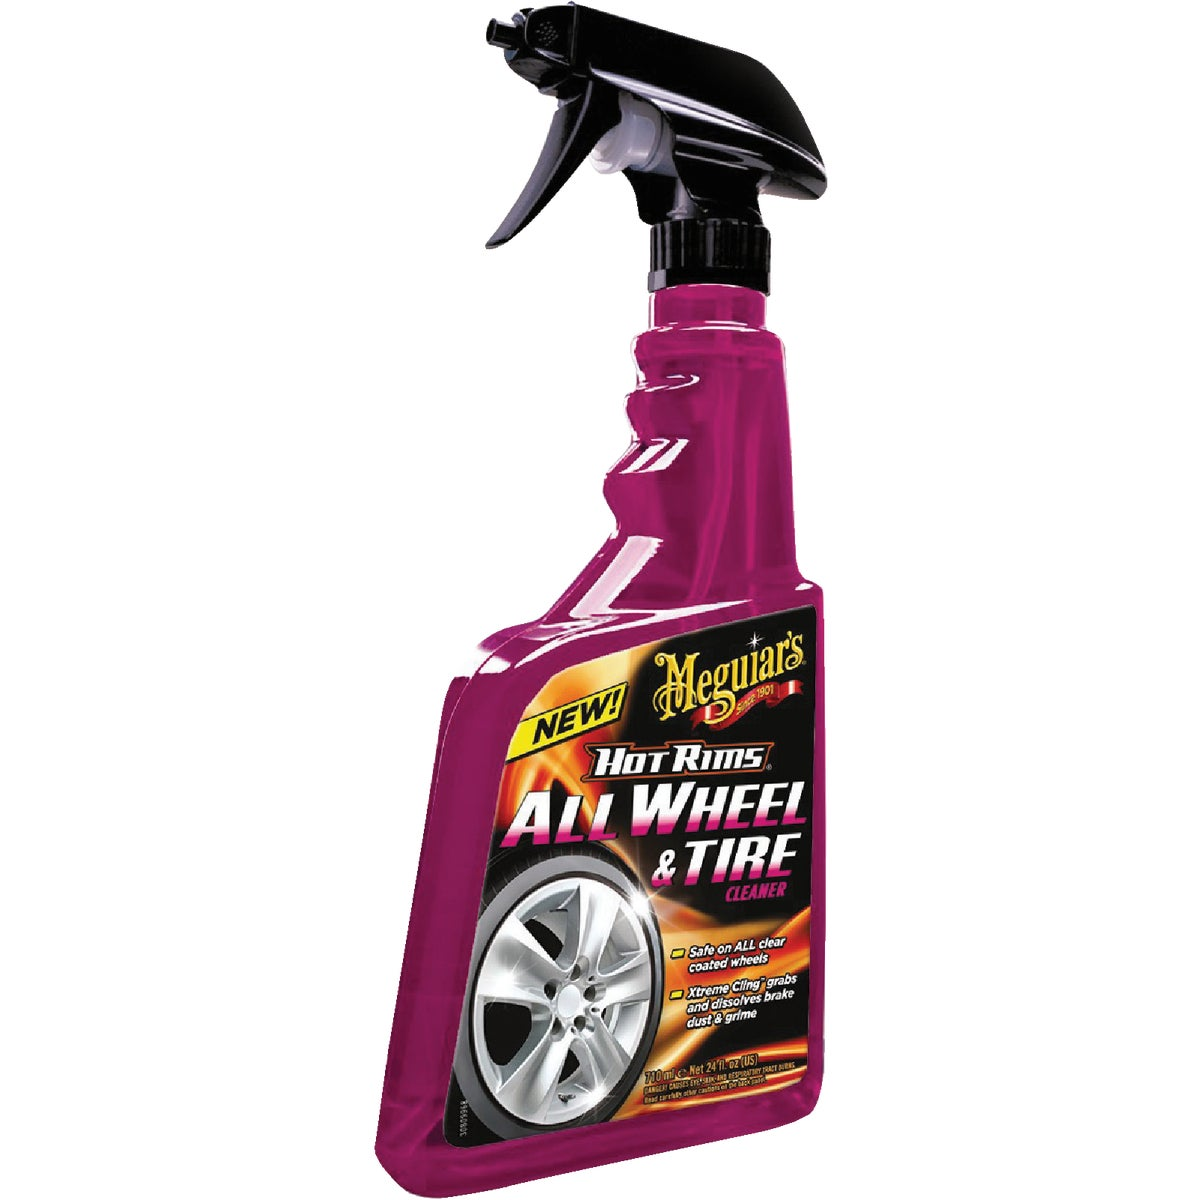 HOT RIMS WHEEL CLEANER - G9524 by Meguiars Inc